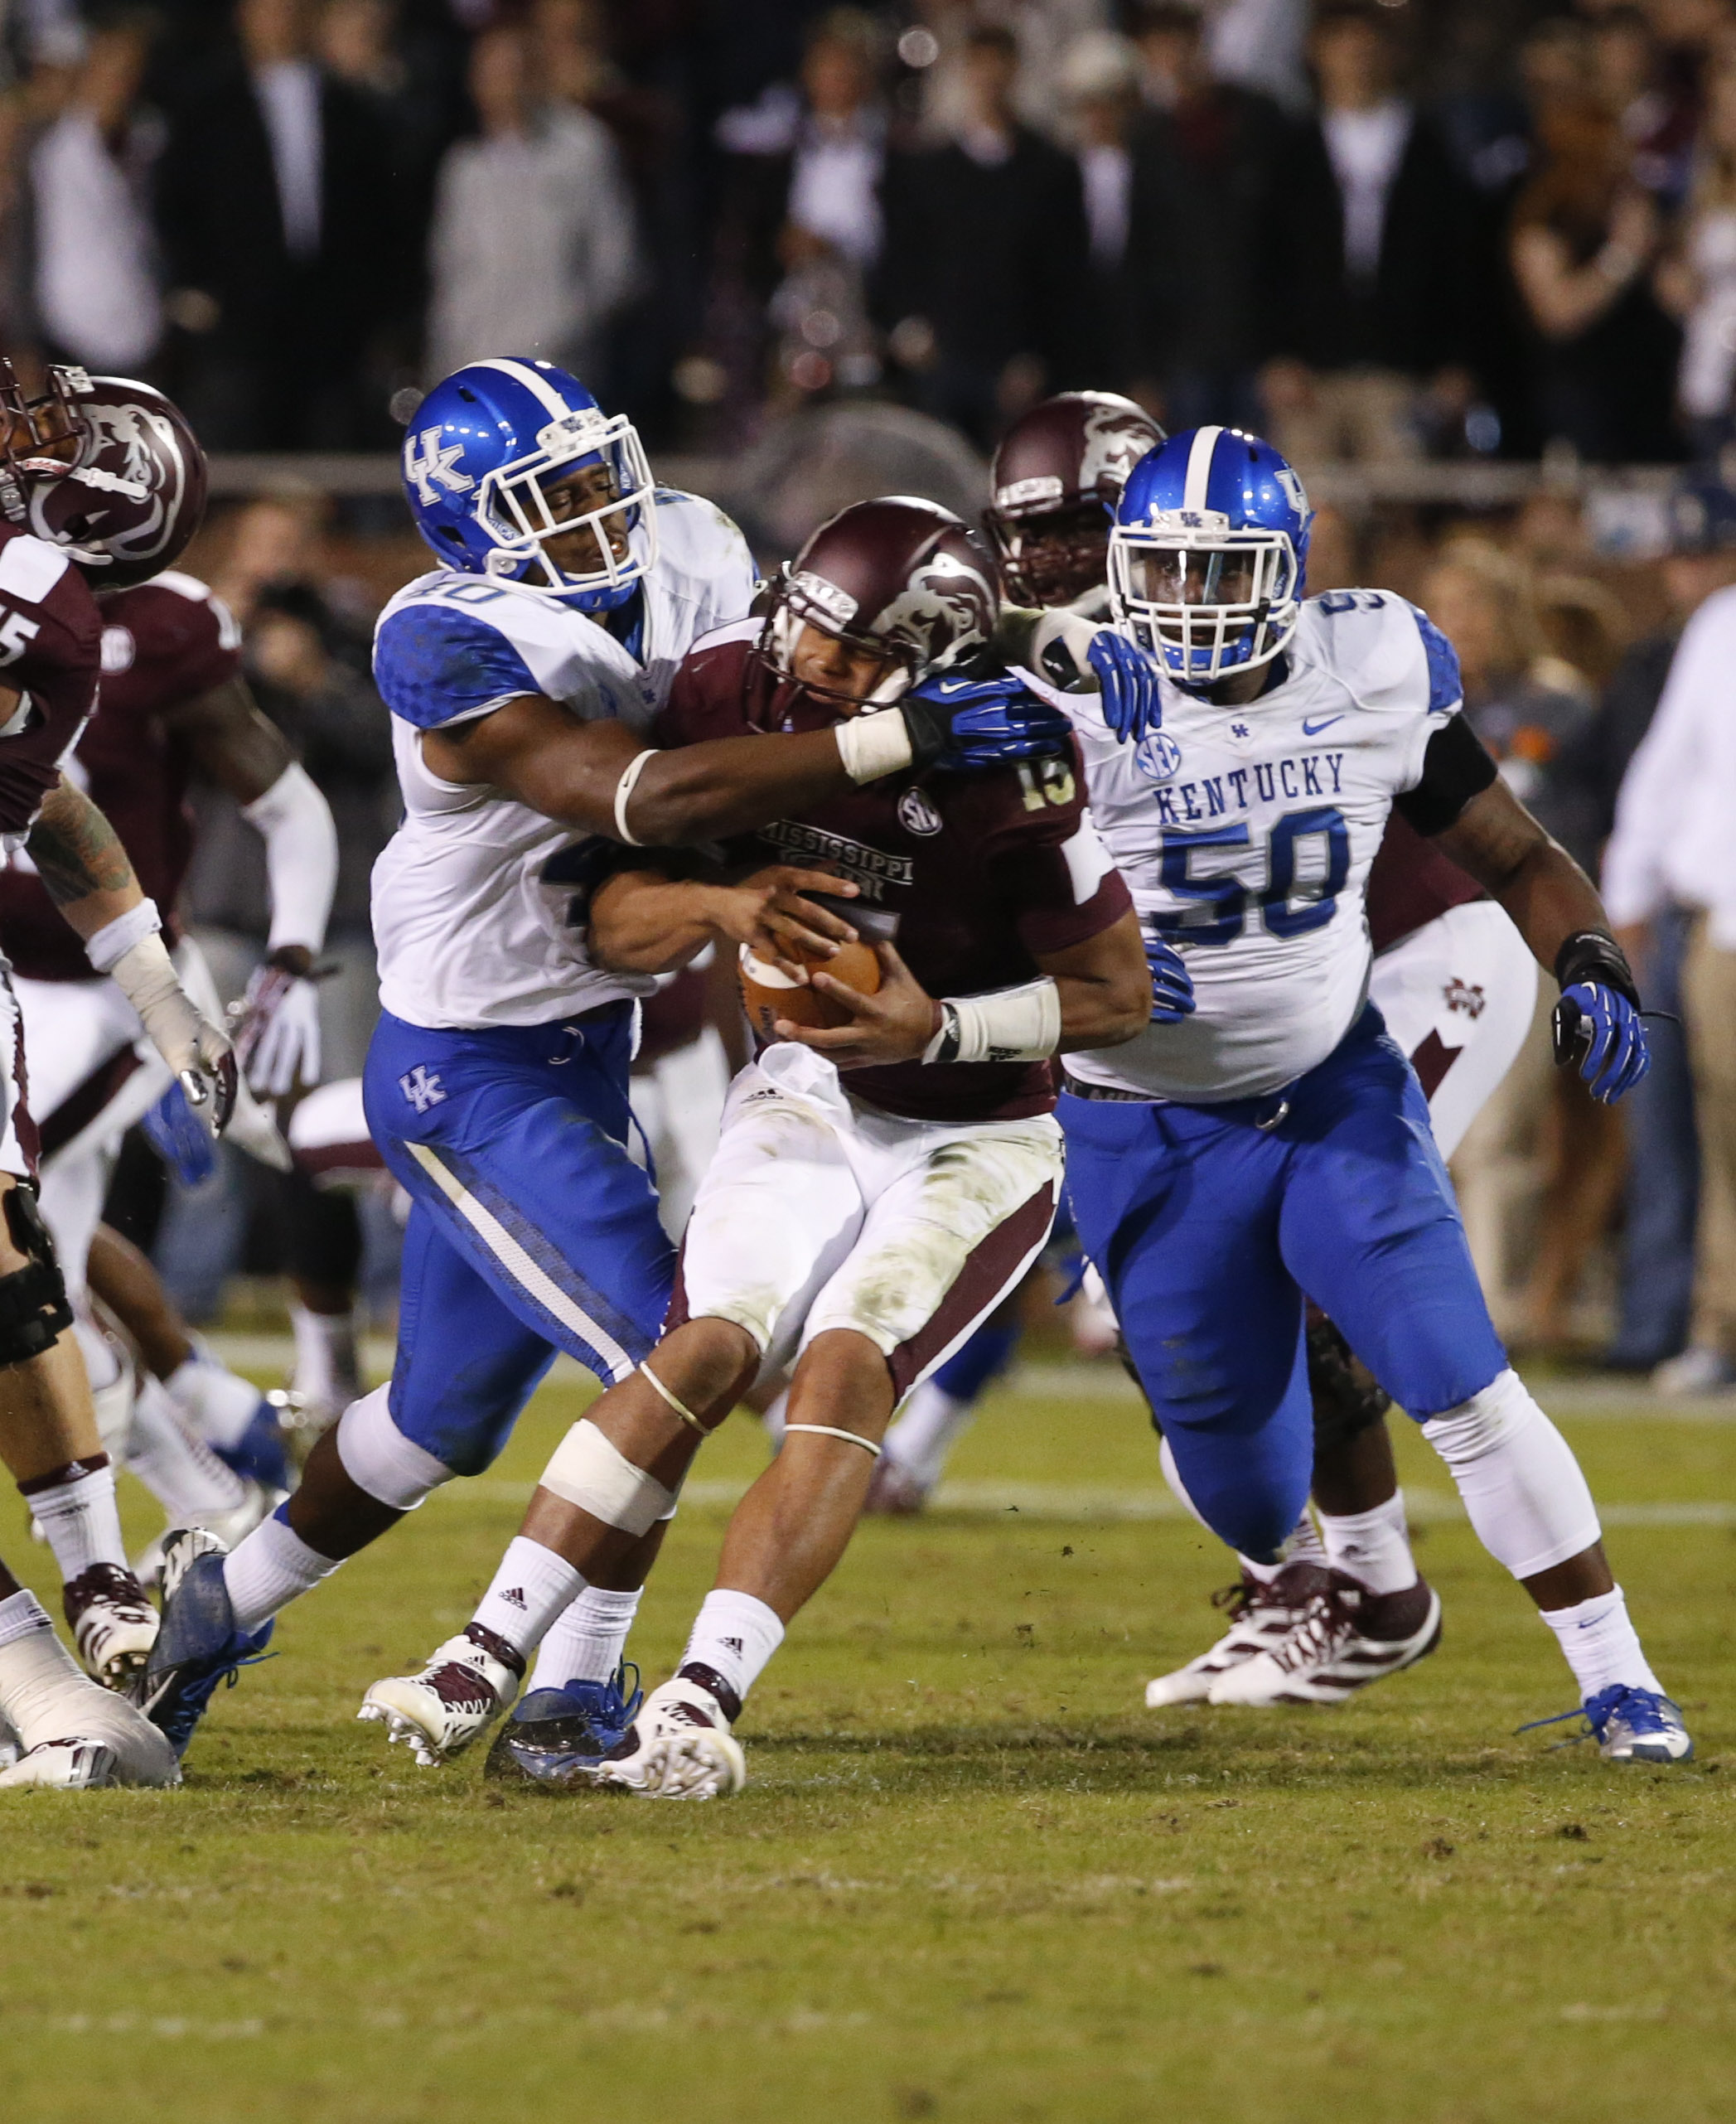 Mississippi State quarterback Dak Prescott (15) is sacked by Kentucky linebacker Avery Williamson, left, and defensive lineman Mike Douglas (50) in the second half of their NCAA college football game at Davis Wade Stadium in Starkville, Miss., Thursday, Oct. 24, 2013. Mississippi State won 28-22